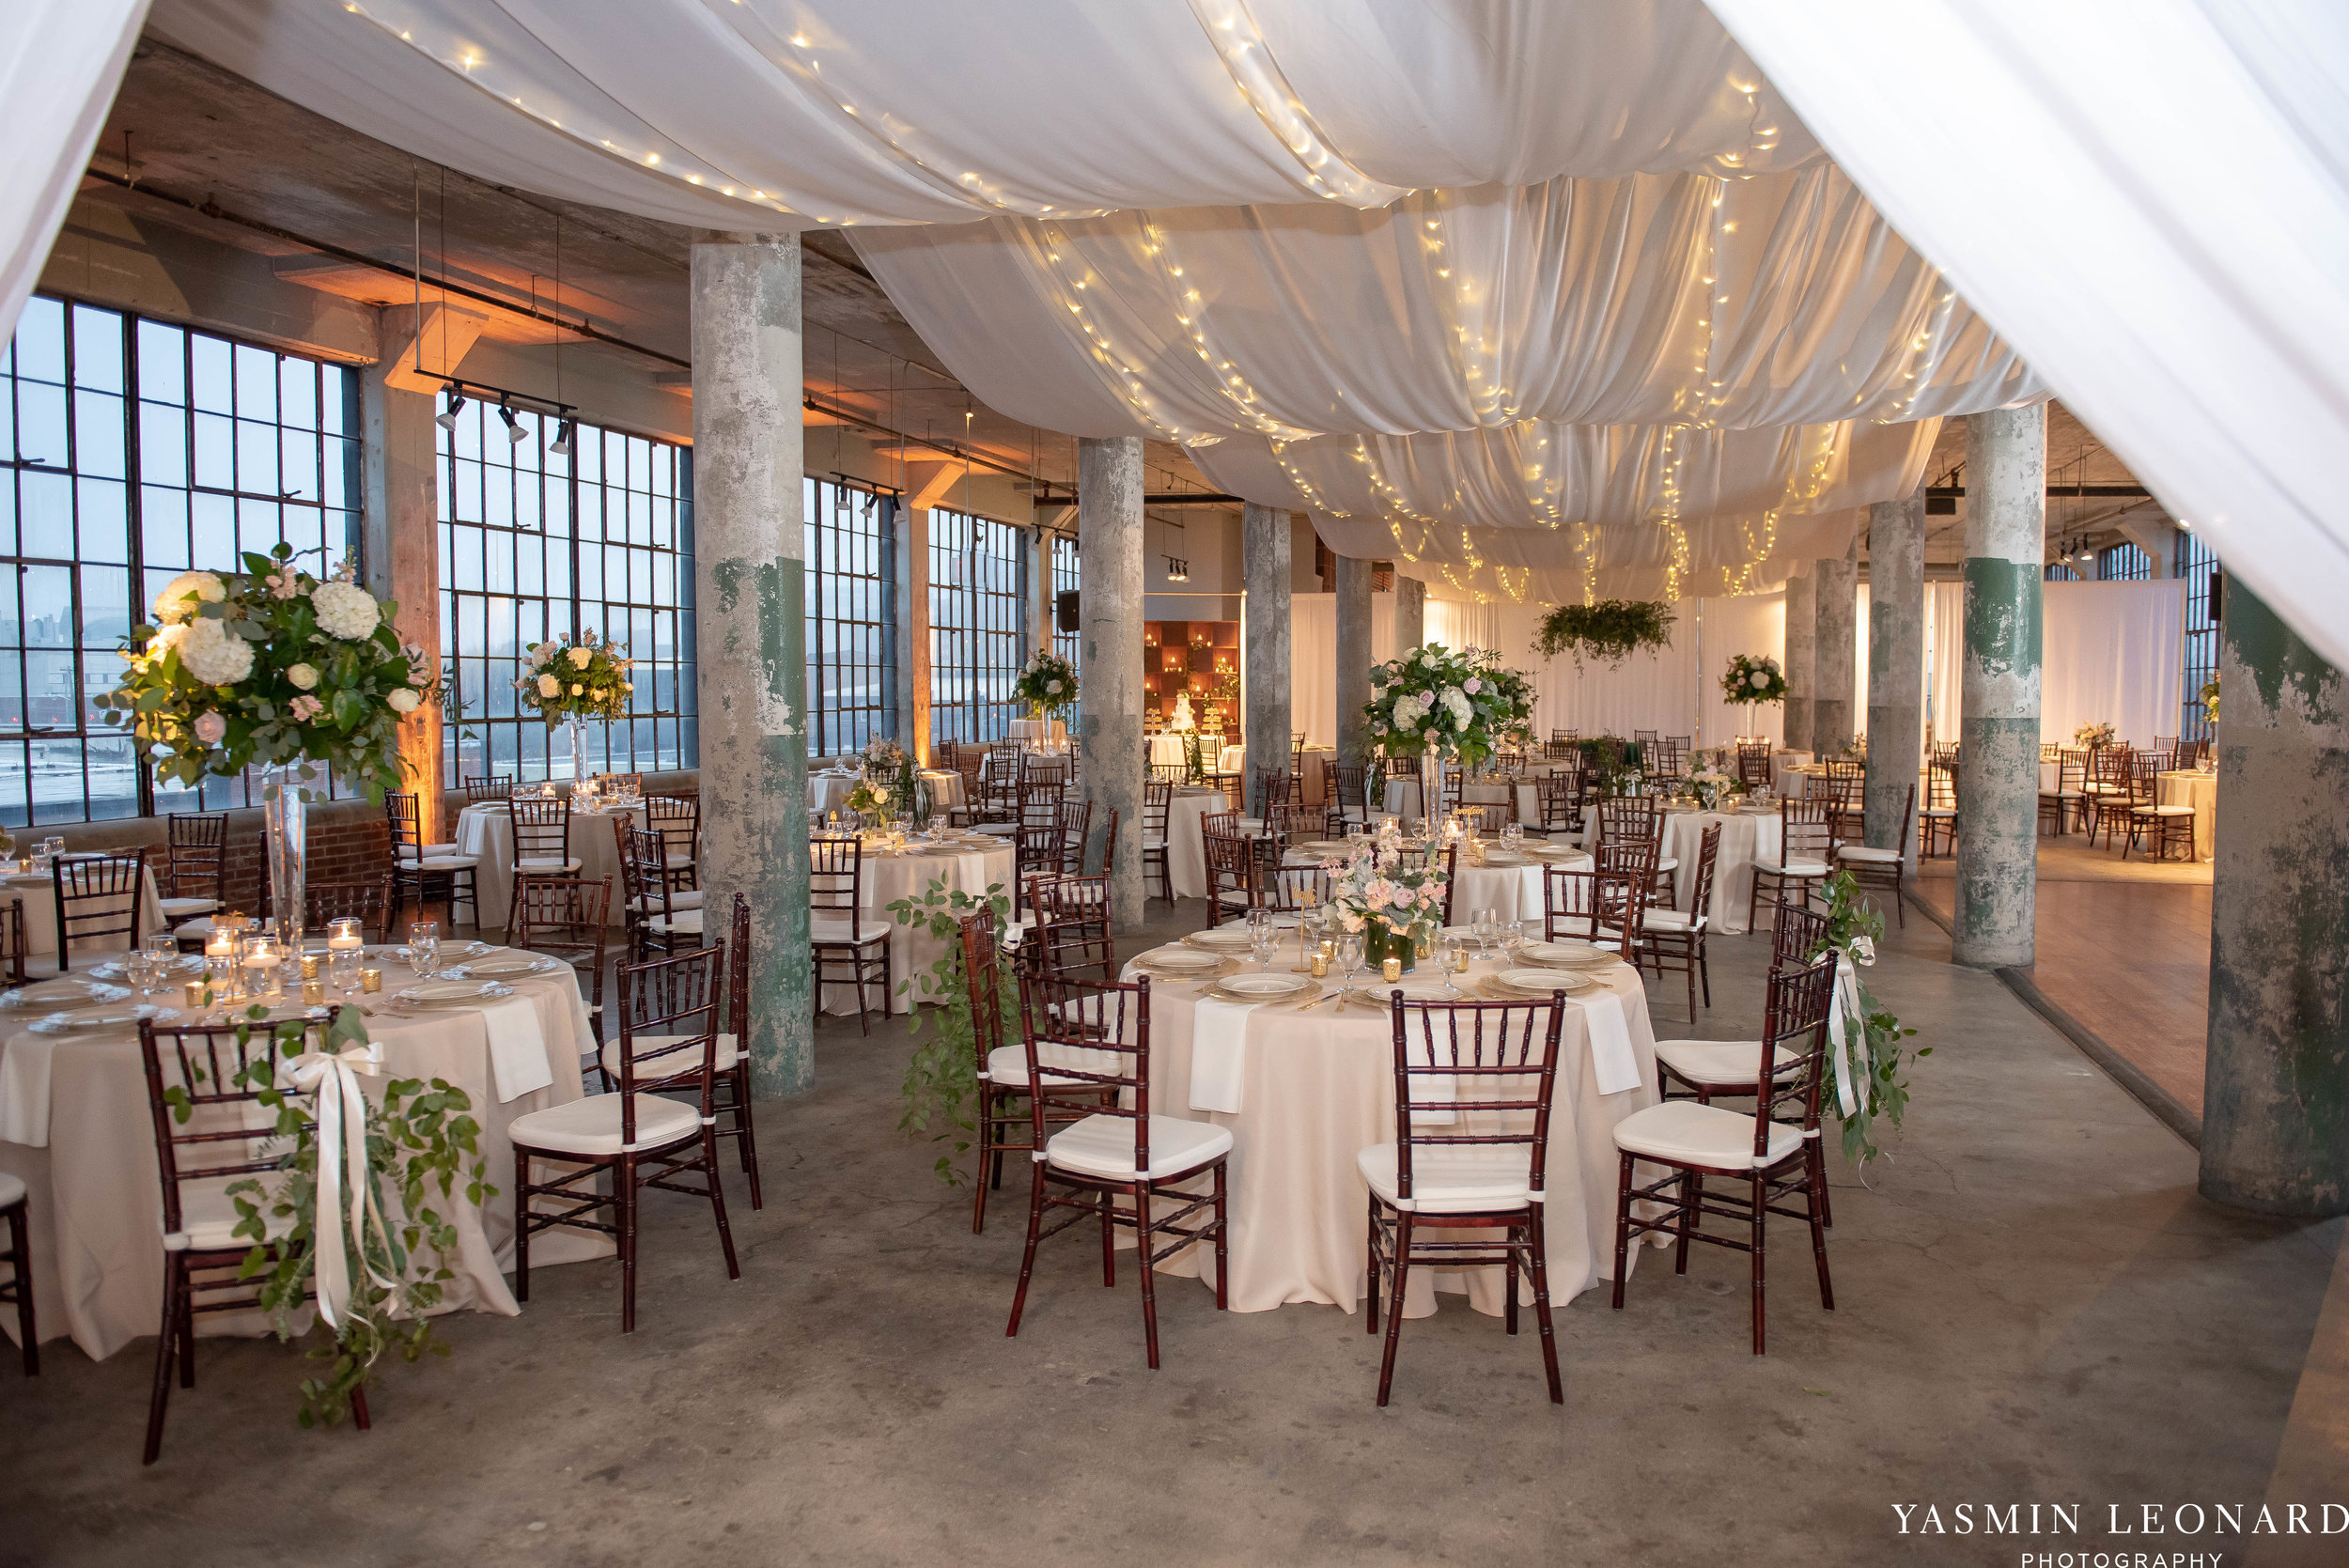 The Lofts at Union Square - Unions - High Point Weddings - NC Weddings - NC Wedding Photographer - Yasmin Leonard Photography - Just Priceless - Green Pink and Gold Wedding - Elegant Wedding-76.jpg